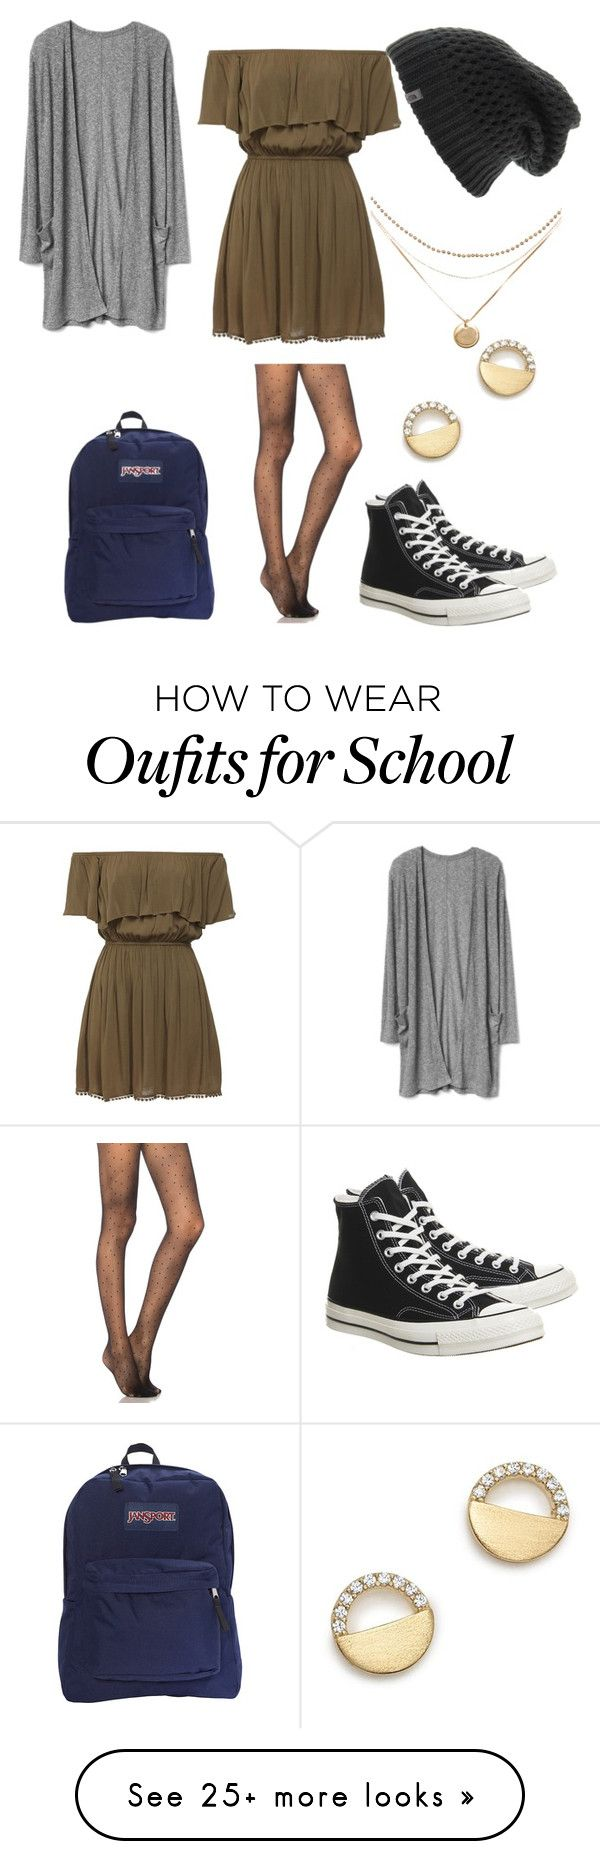 """""""Untitled #1225"""" by the-cute-psycho21 on Polyvore featuring Pretty Polly, Converse, JanSport, The North Face and Bloomingdale's"""